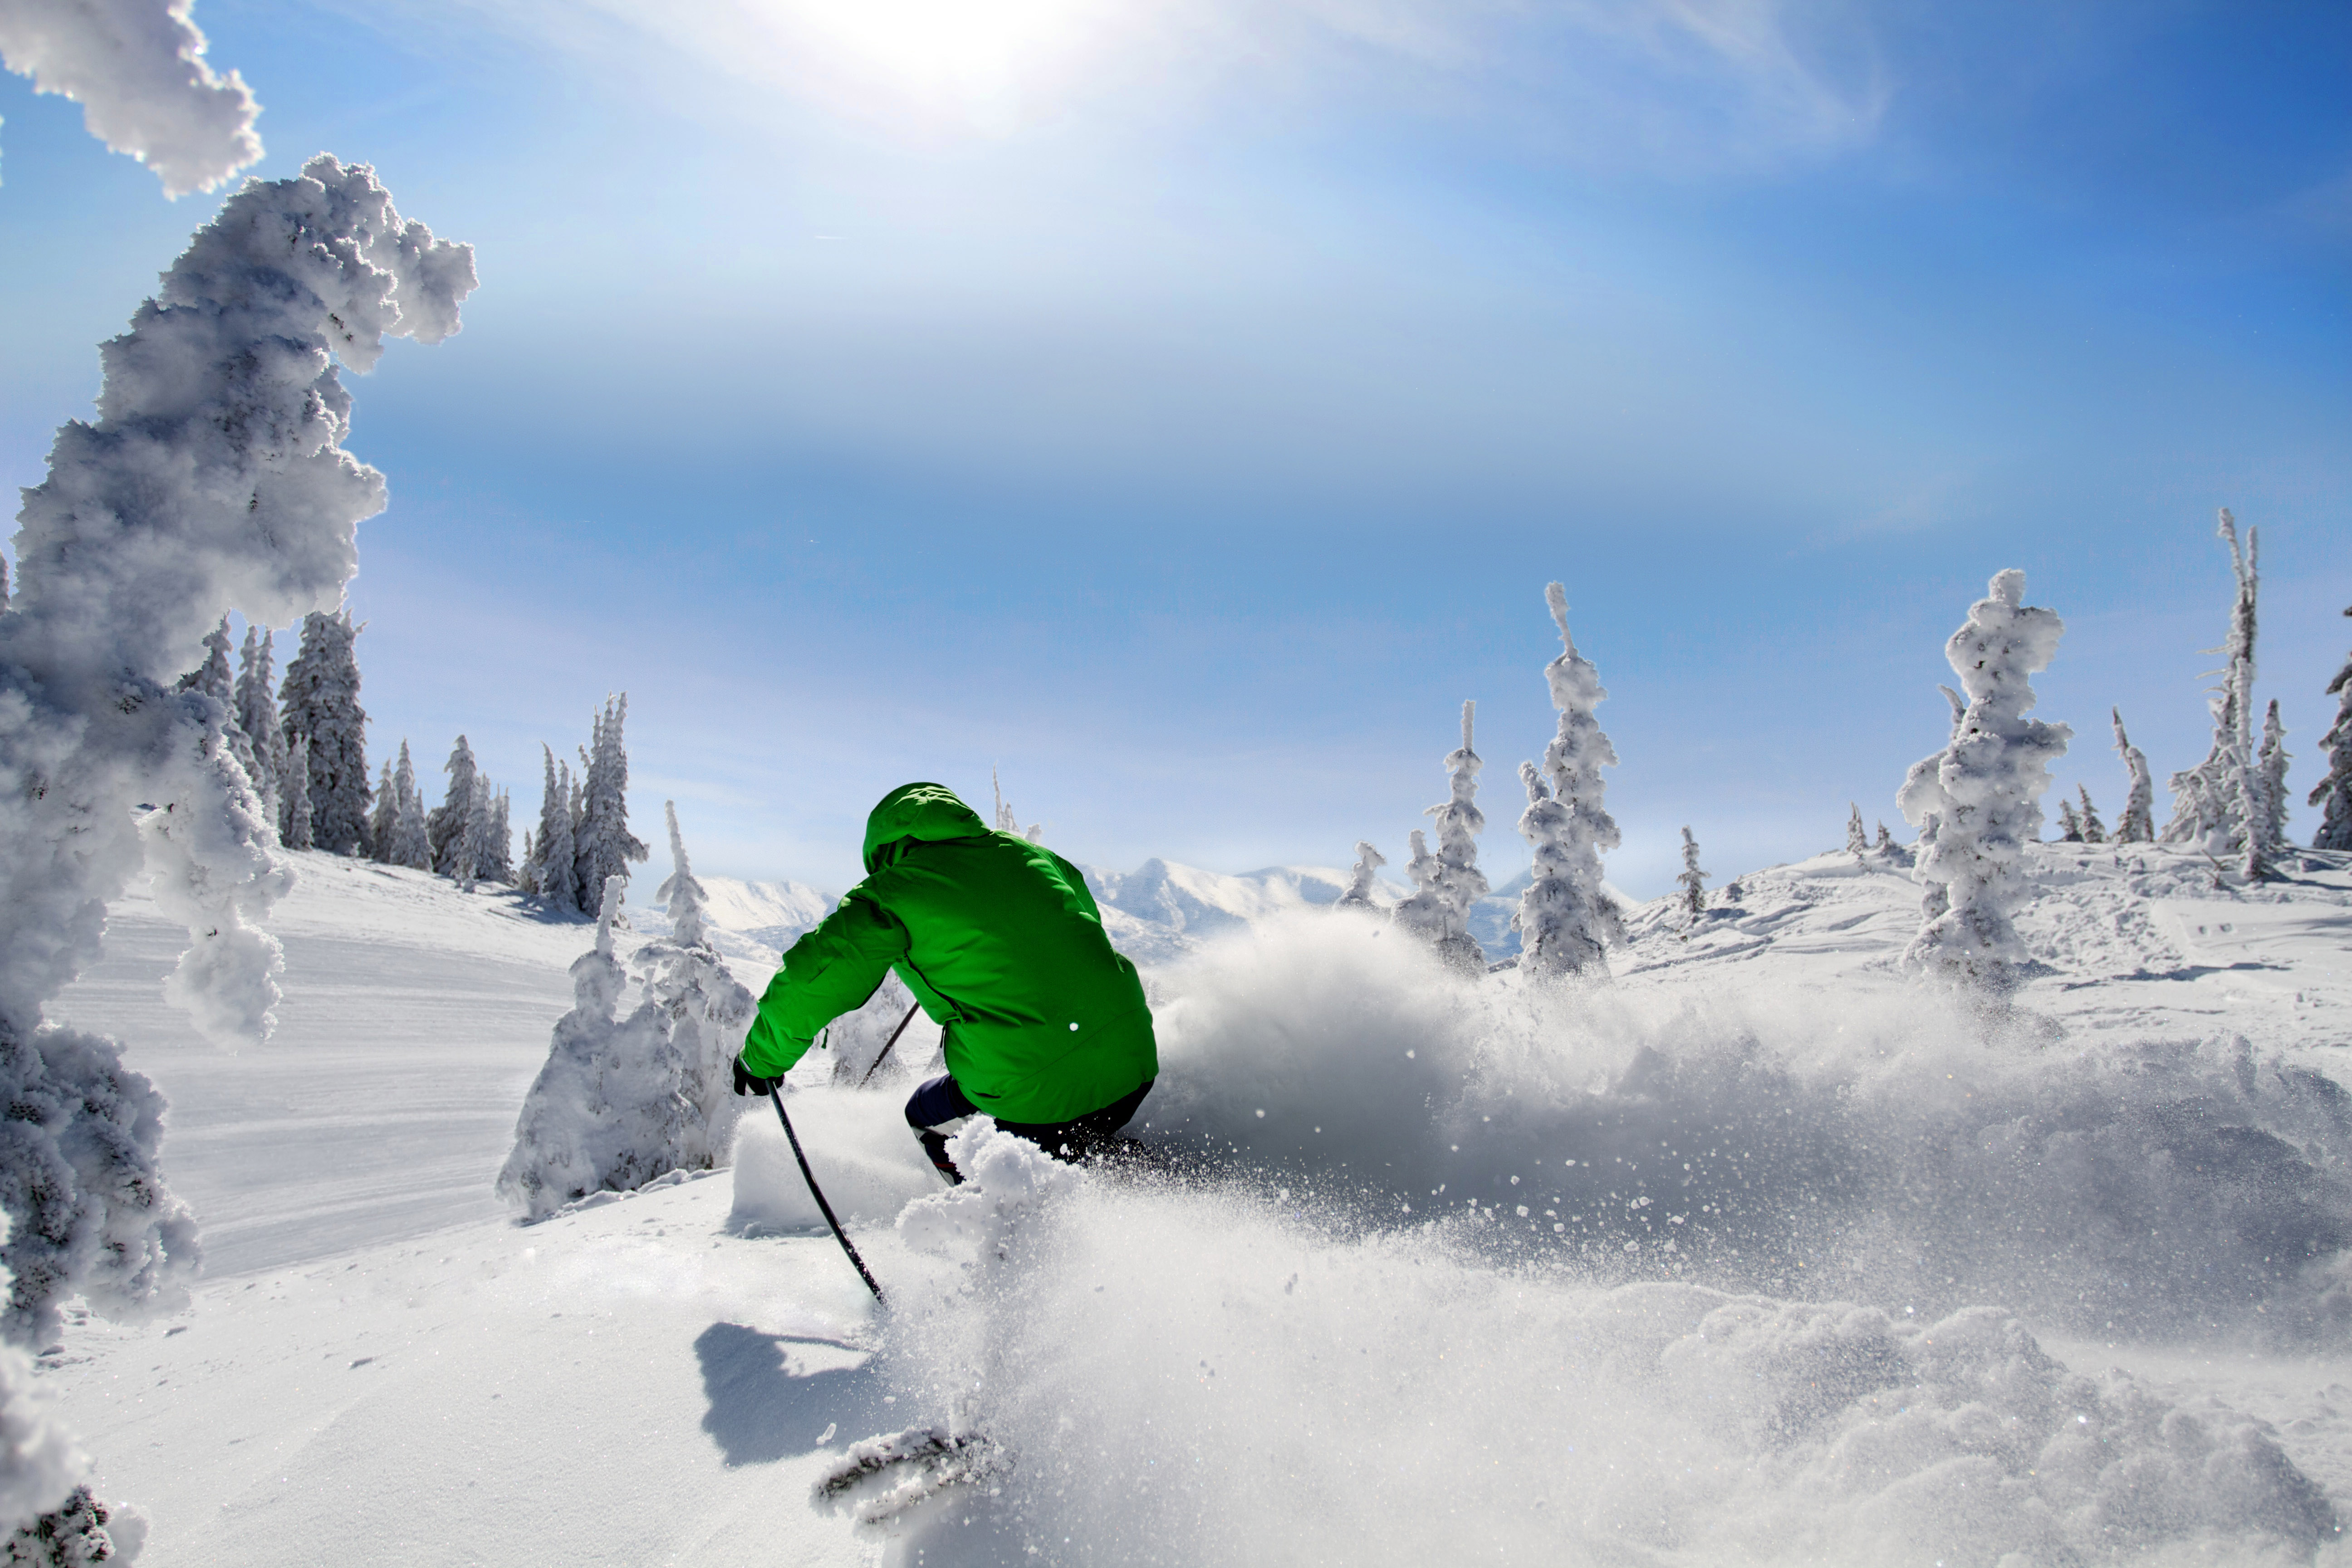 700 centimetres of light, dry powder blankets Silver Star's 3,065 acres of skiable terrain annually. Photo Credit: Silver Star Mountain Resort